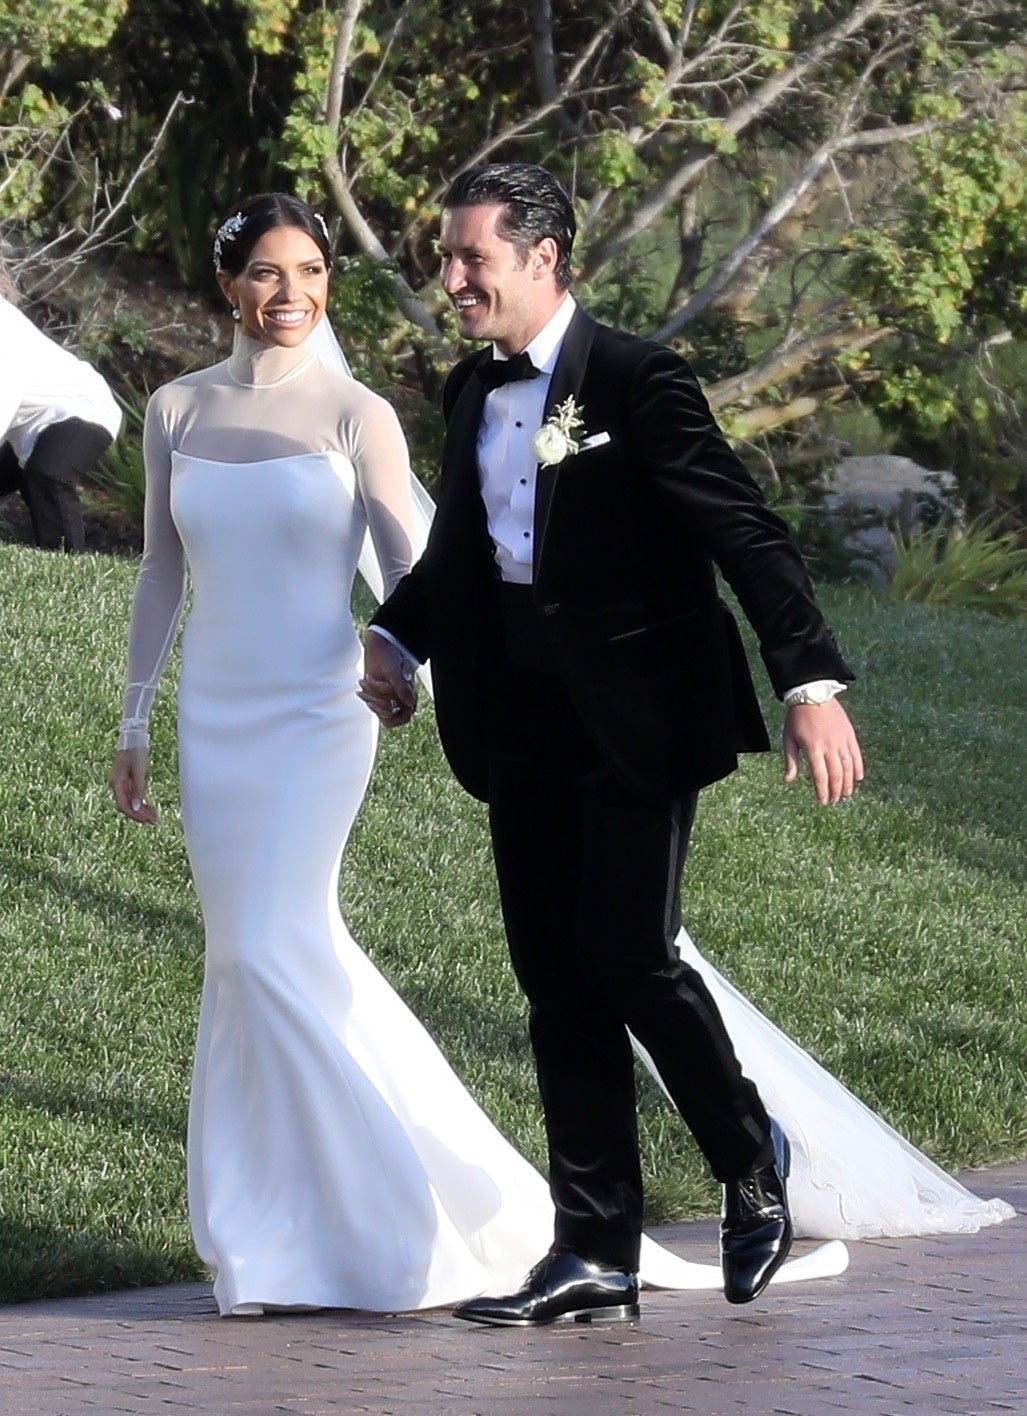 514a7173161 Jenna Johnson and Val Chmerkovskiy Are Married! | Entertainment Tonight